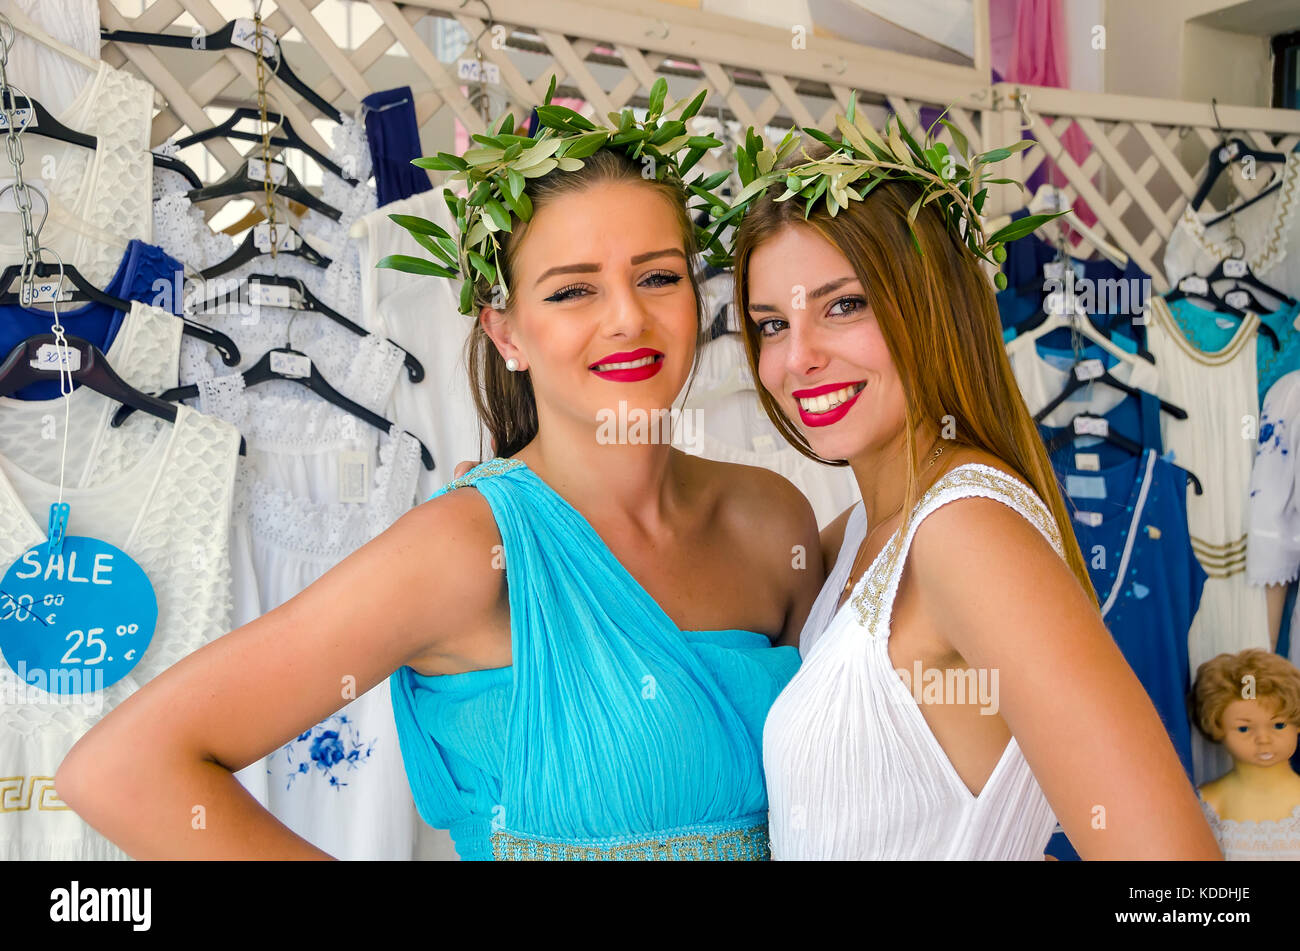 Sales women in clothing store wearing classical Greek dresses Argostoli, Kefalonia, cephalonia, Ionian Islands, - Stock Image